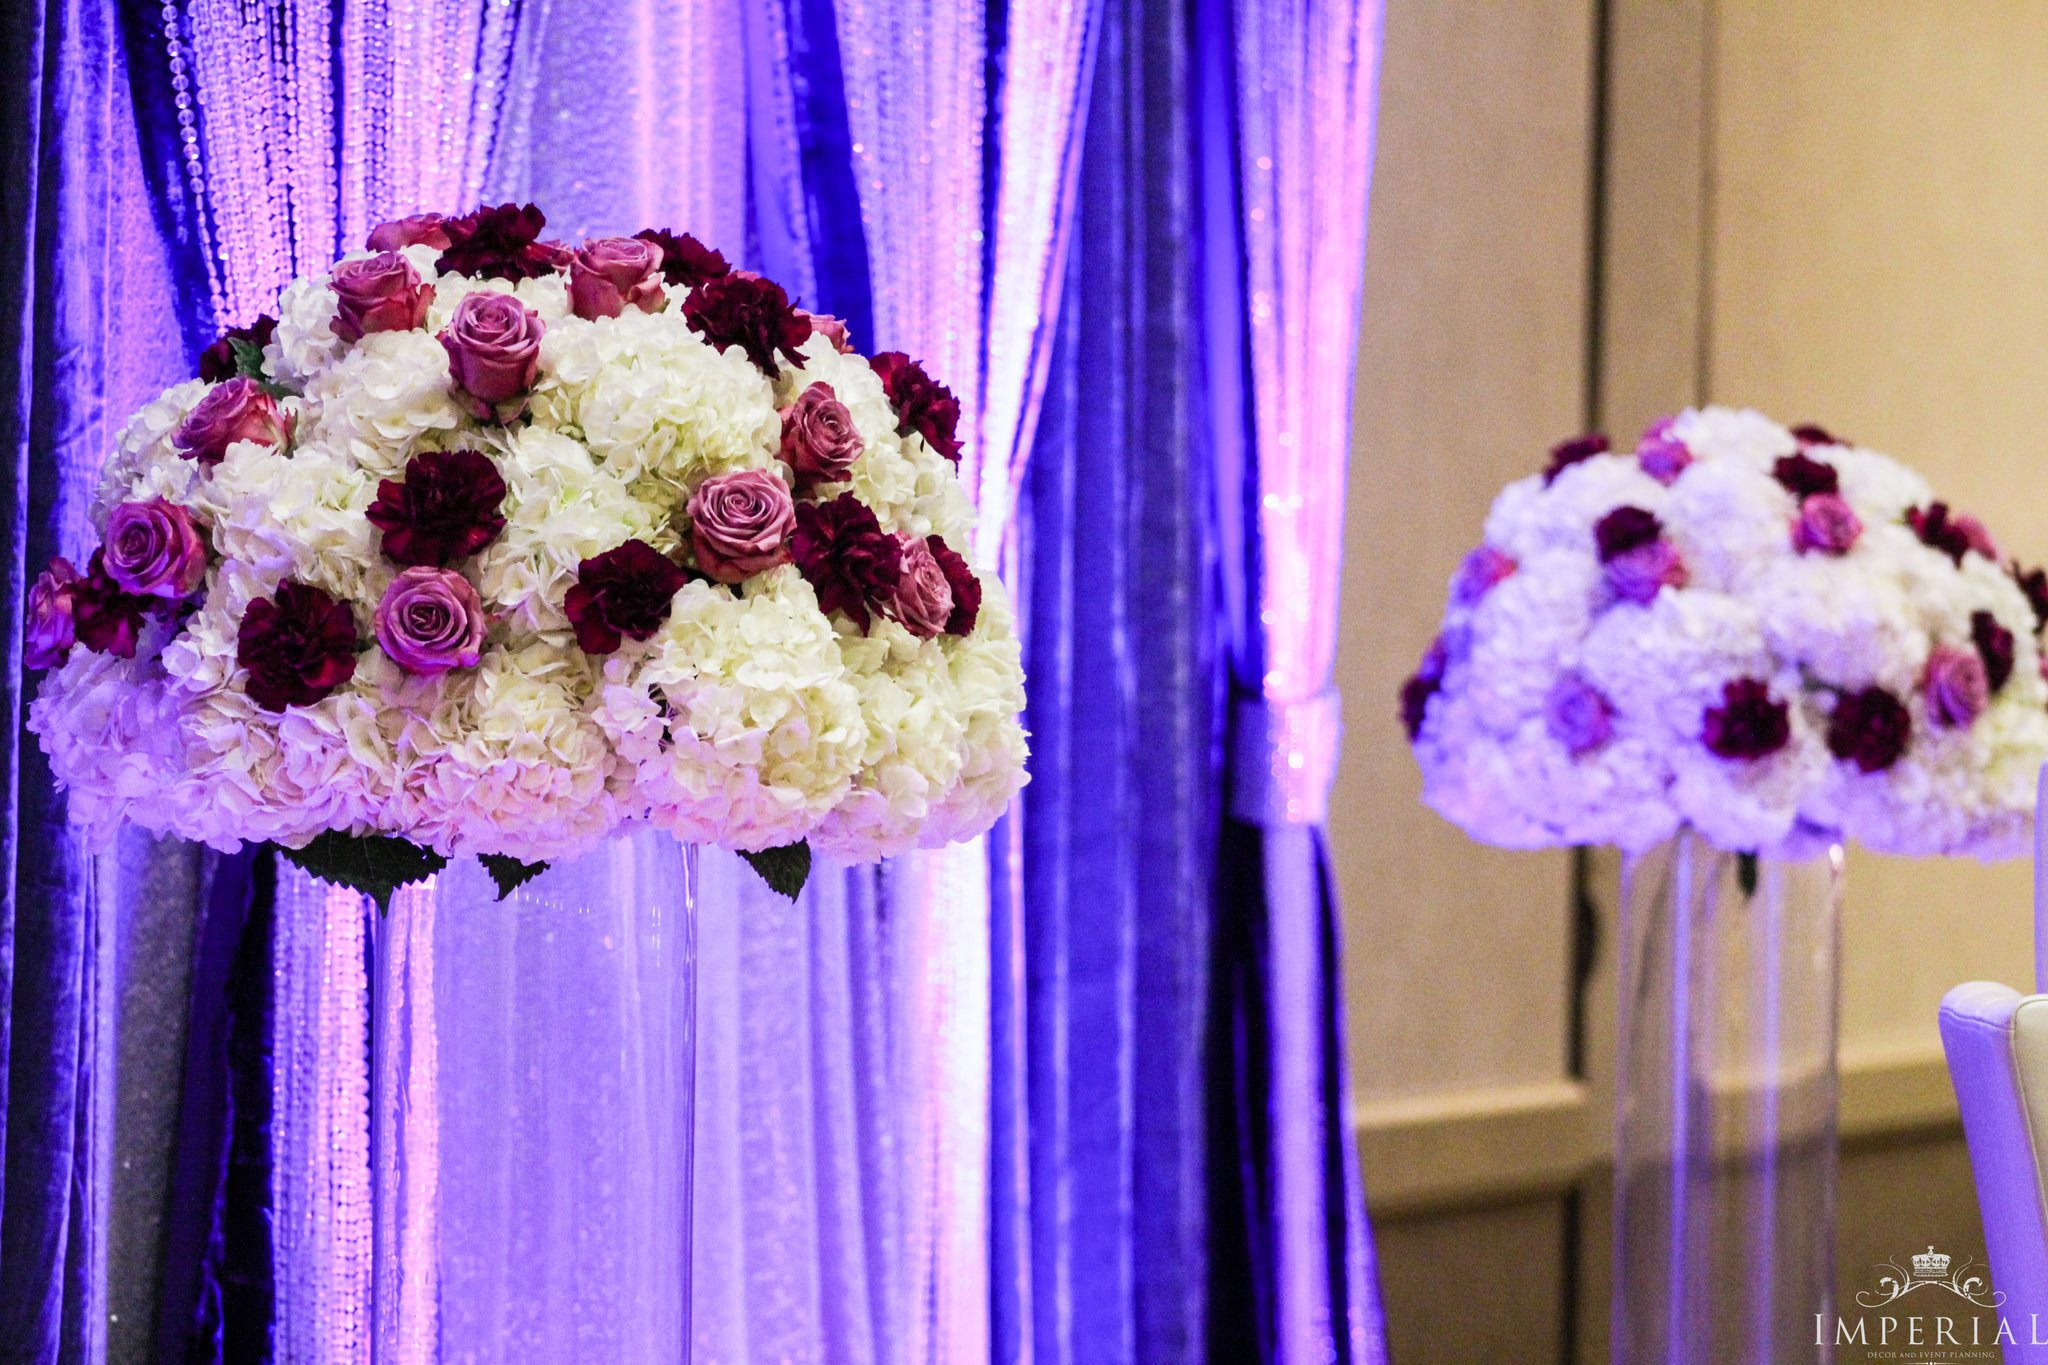 Imperial Decorations - Indian Wedding Floral Stage Decorations Washington DC.jpg